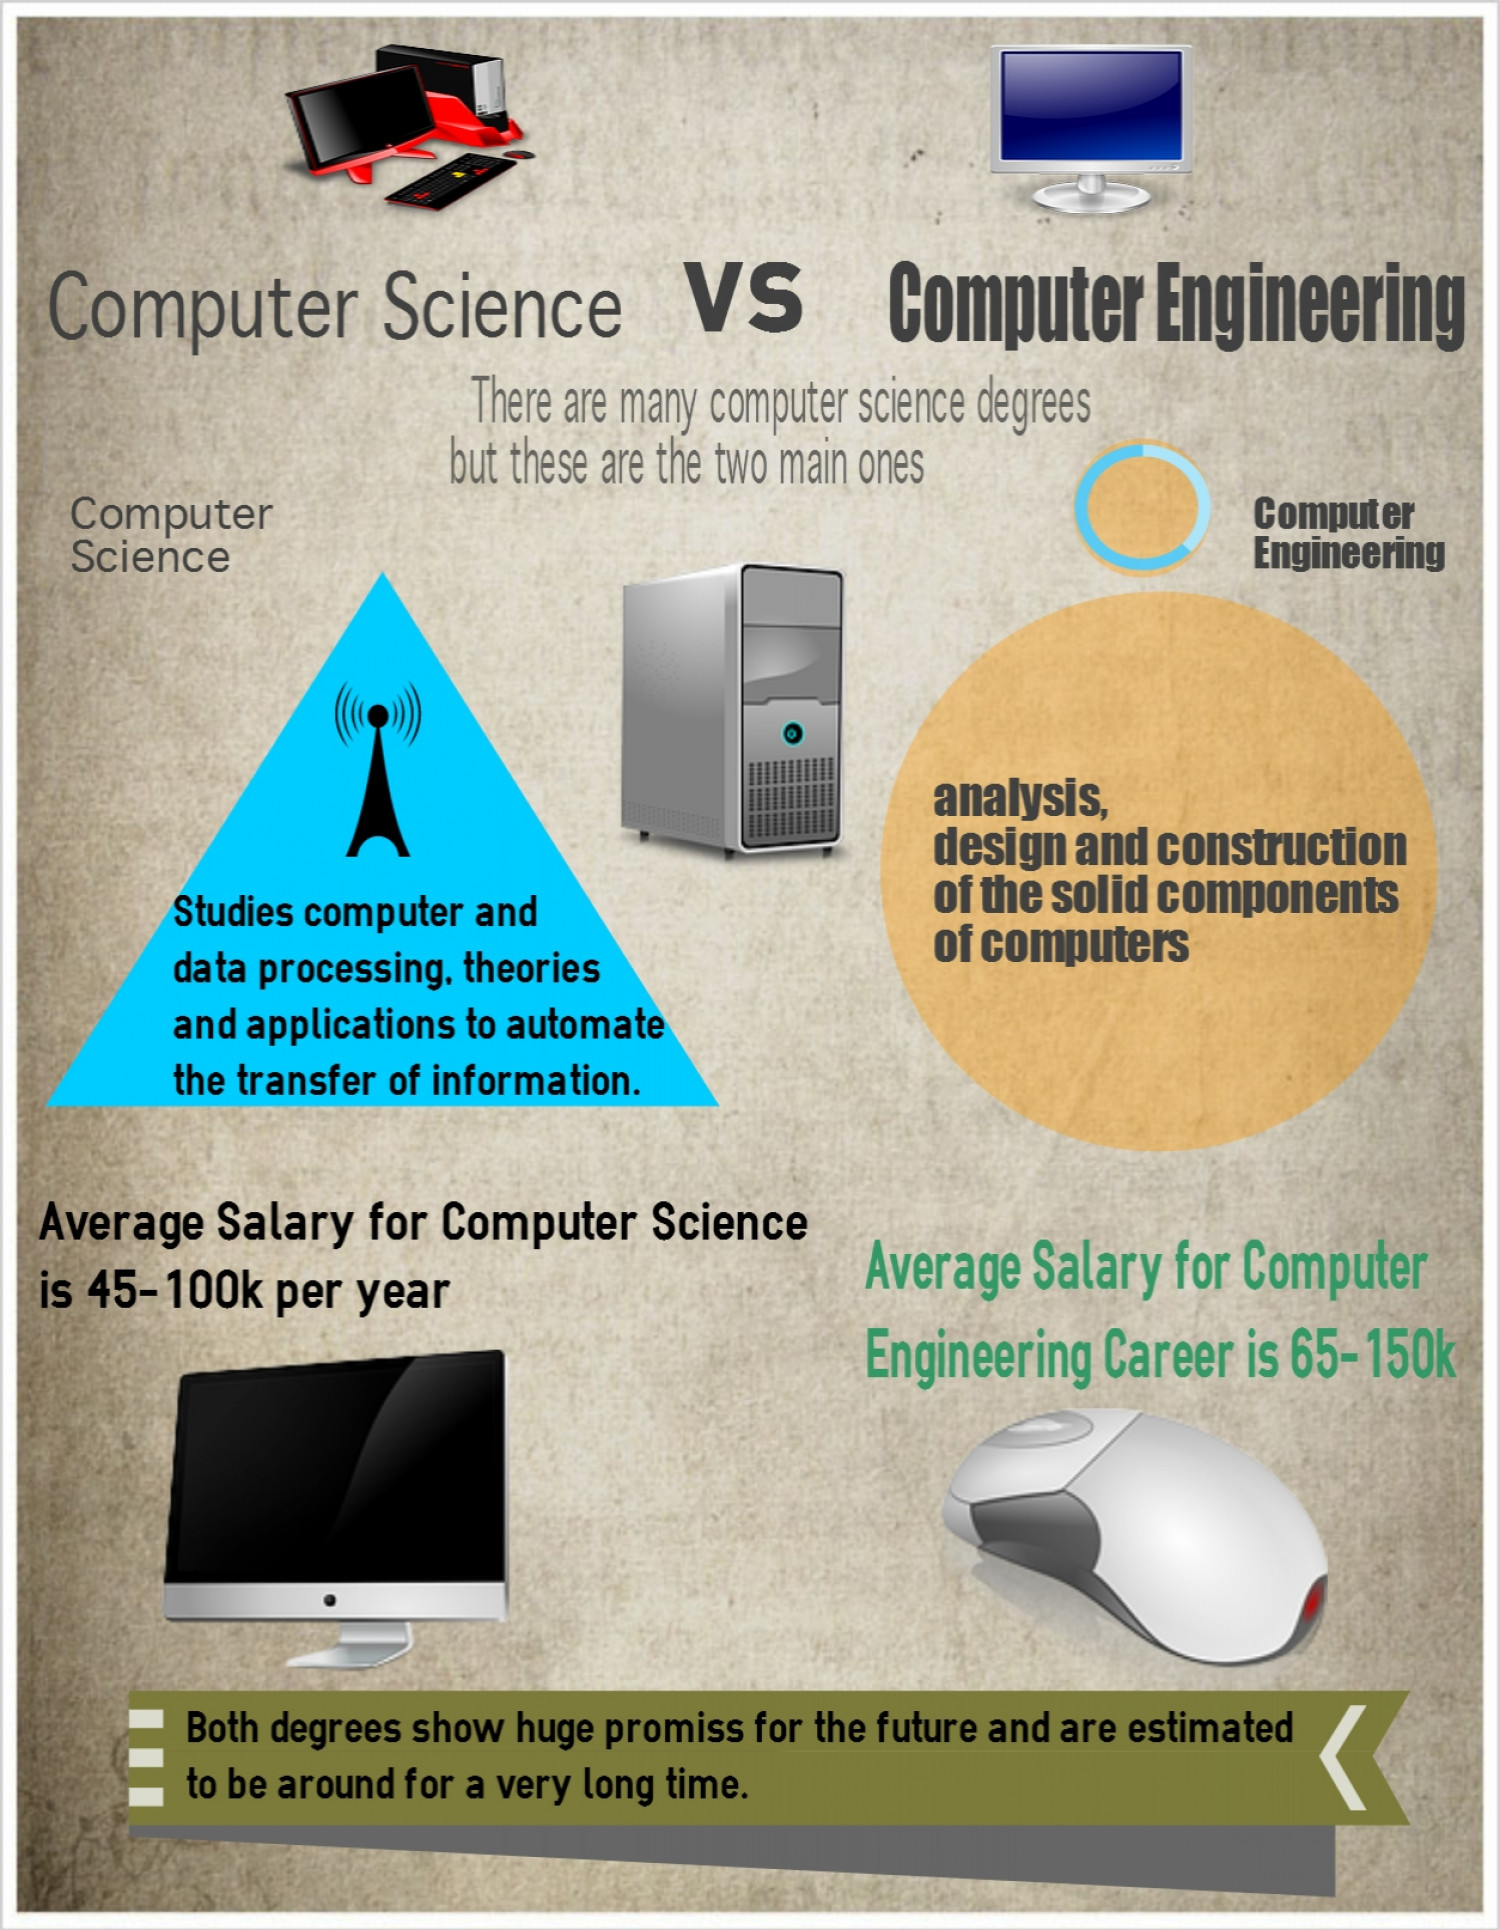 Computer Science vs Computer Engineering Infographic